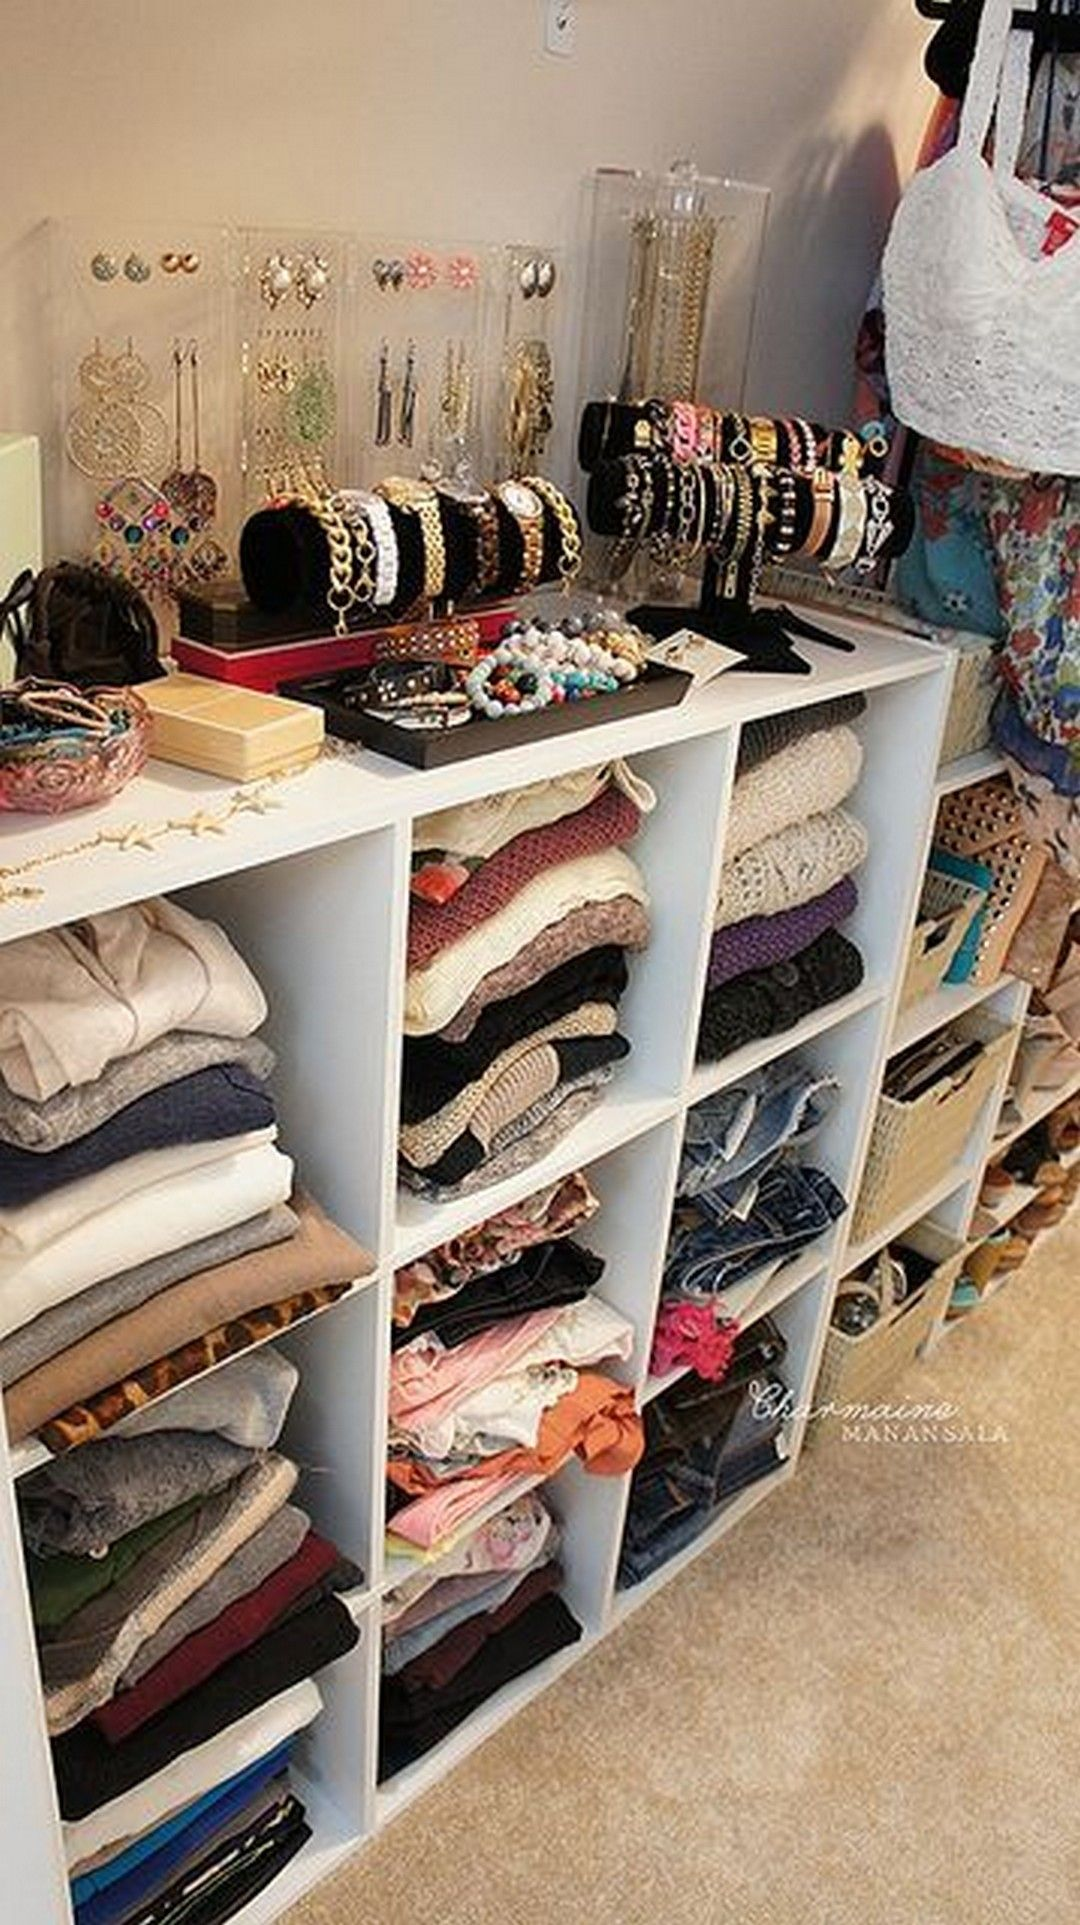 Easy Diy Small Bedroom Organization And Storage Hacks With Images